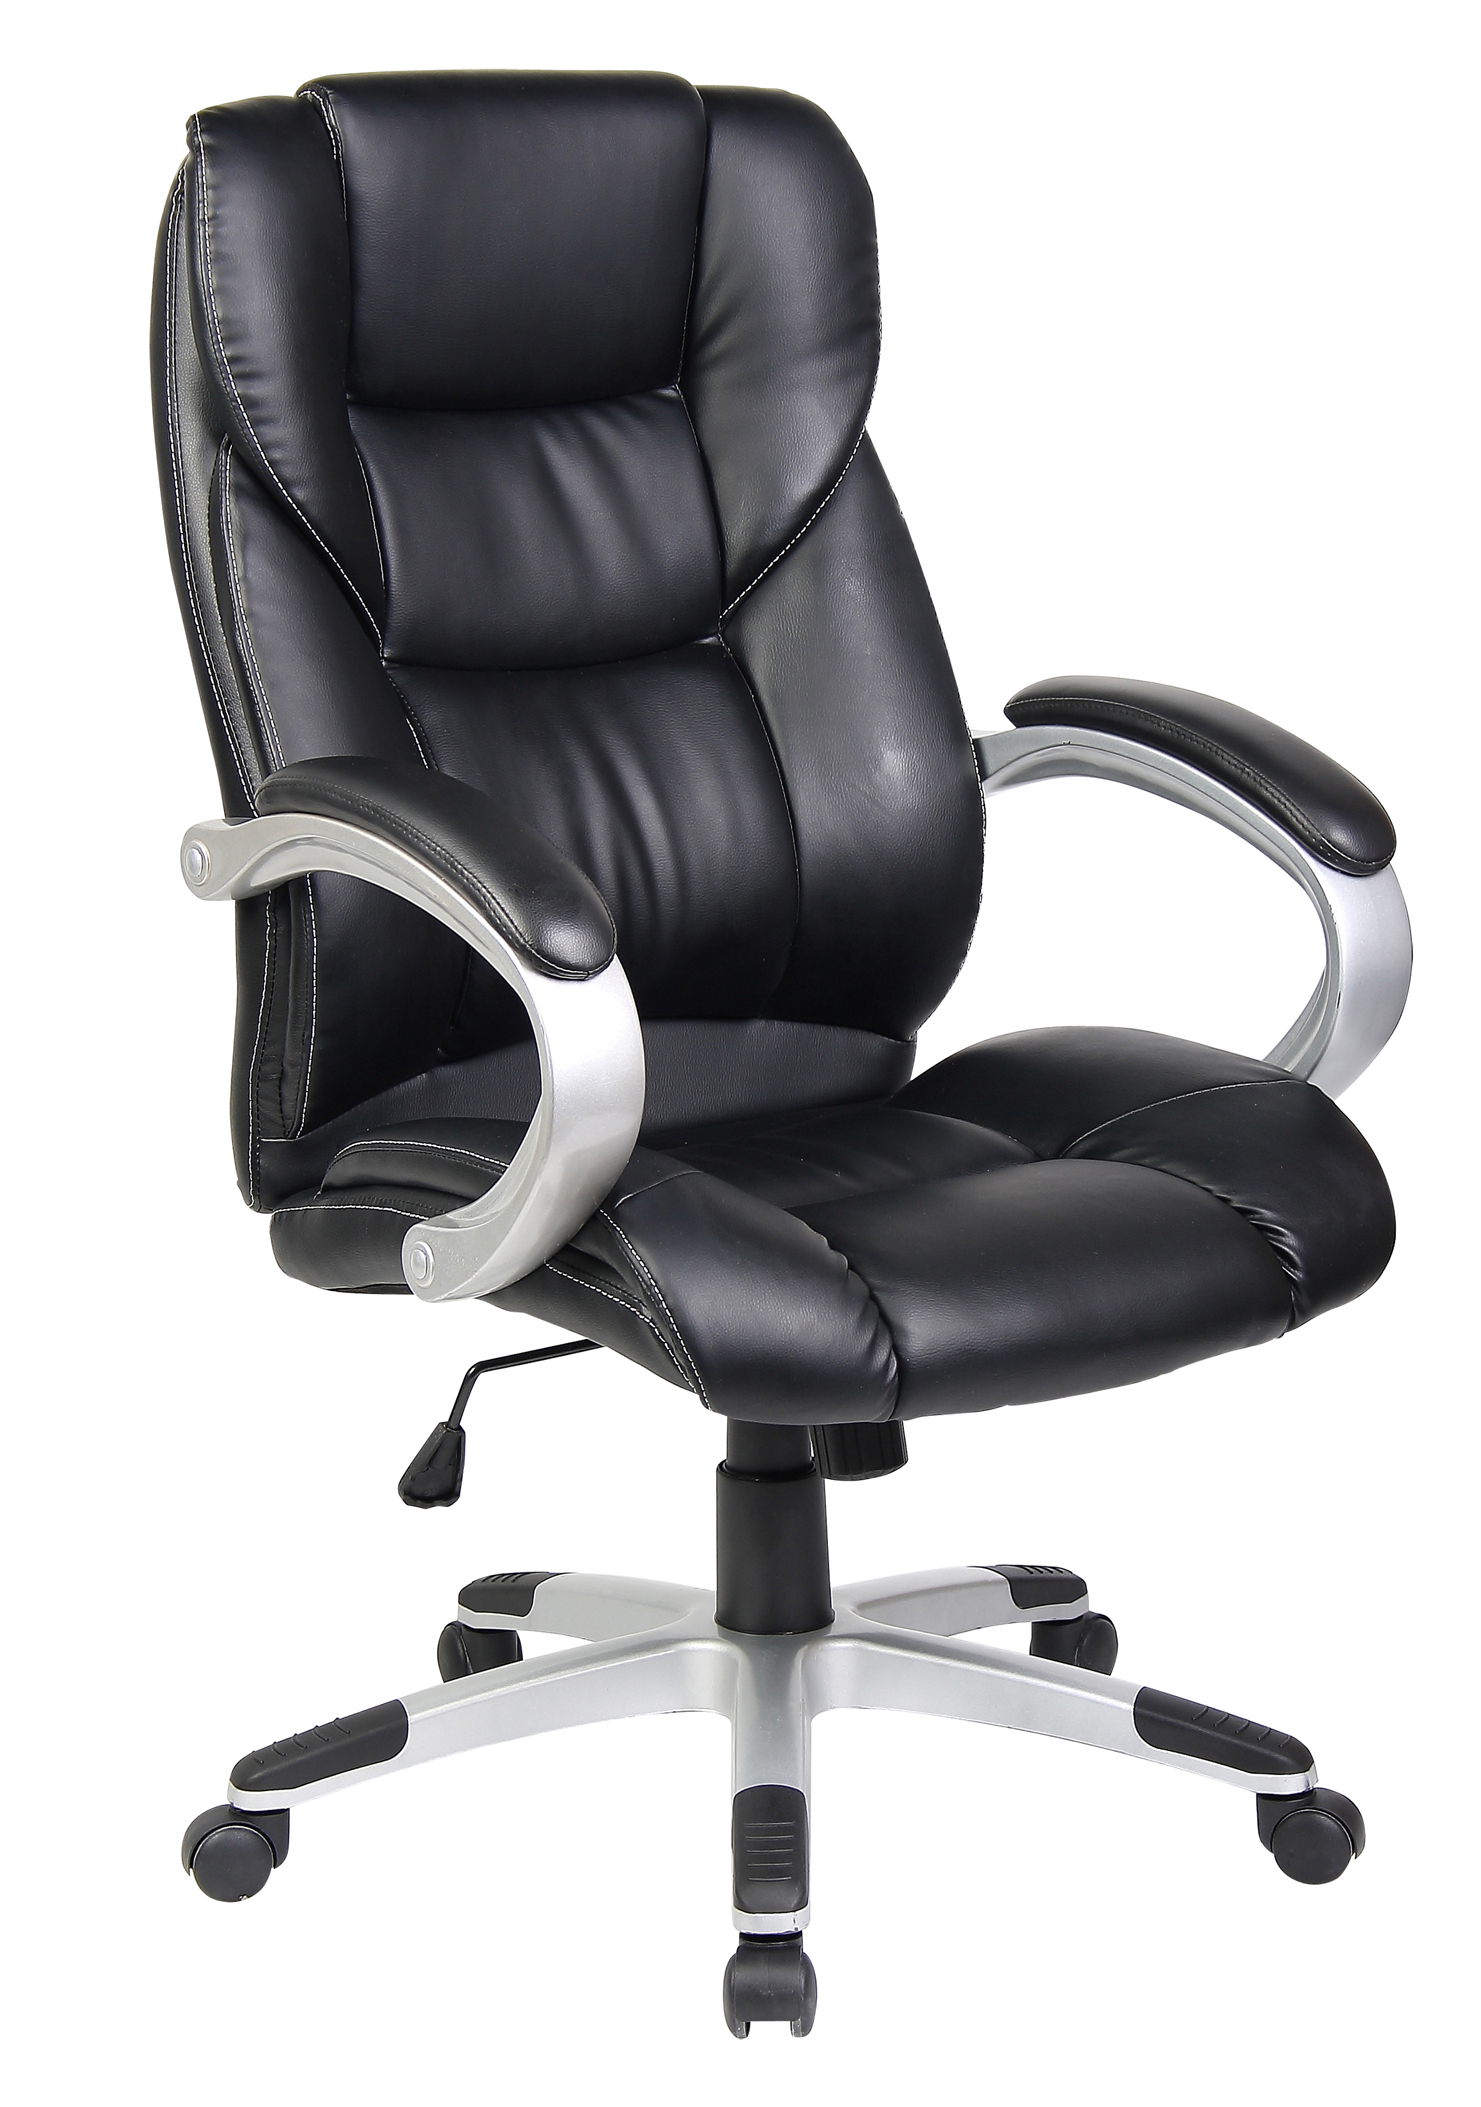 Executive Chairs Quality Swivel Pu Leather Executive Office Furnitue